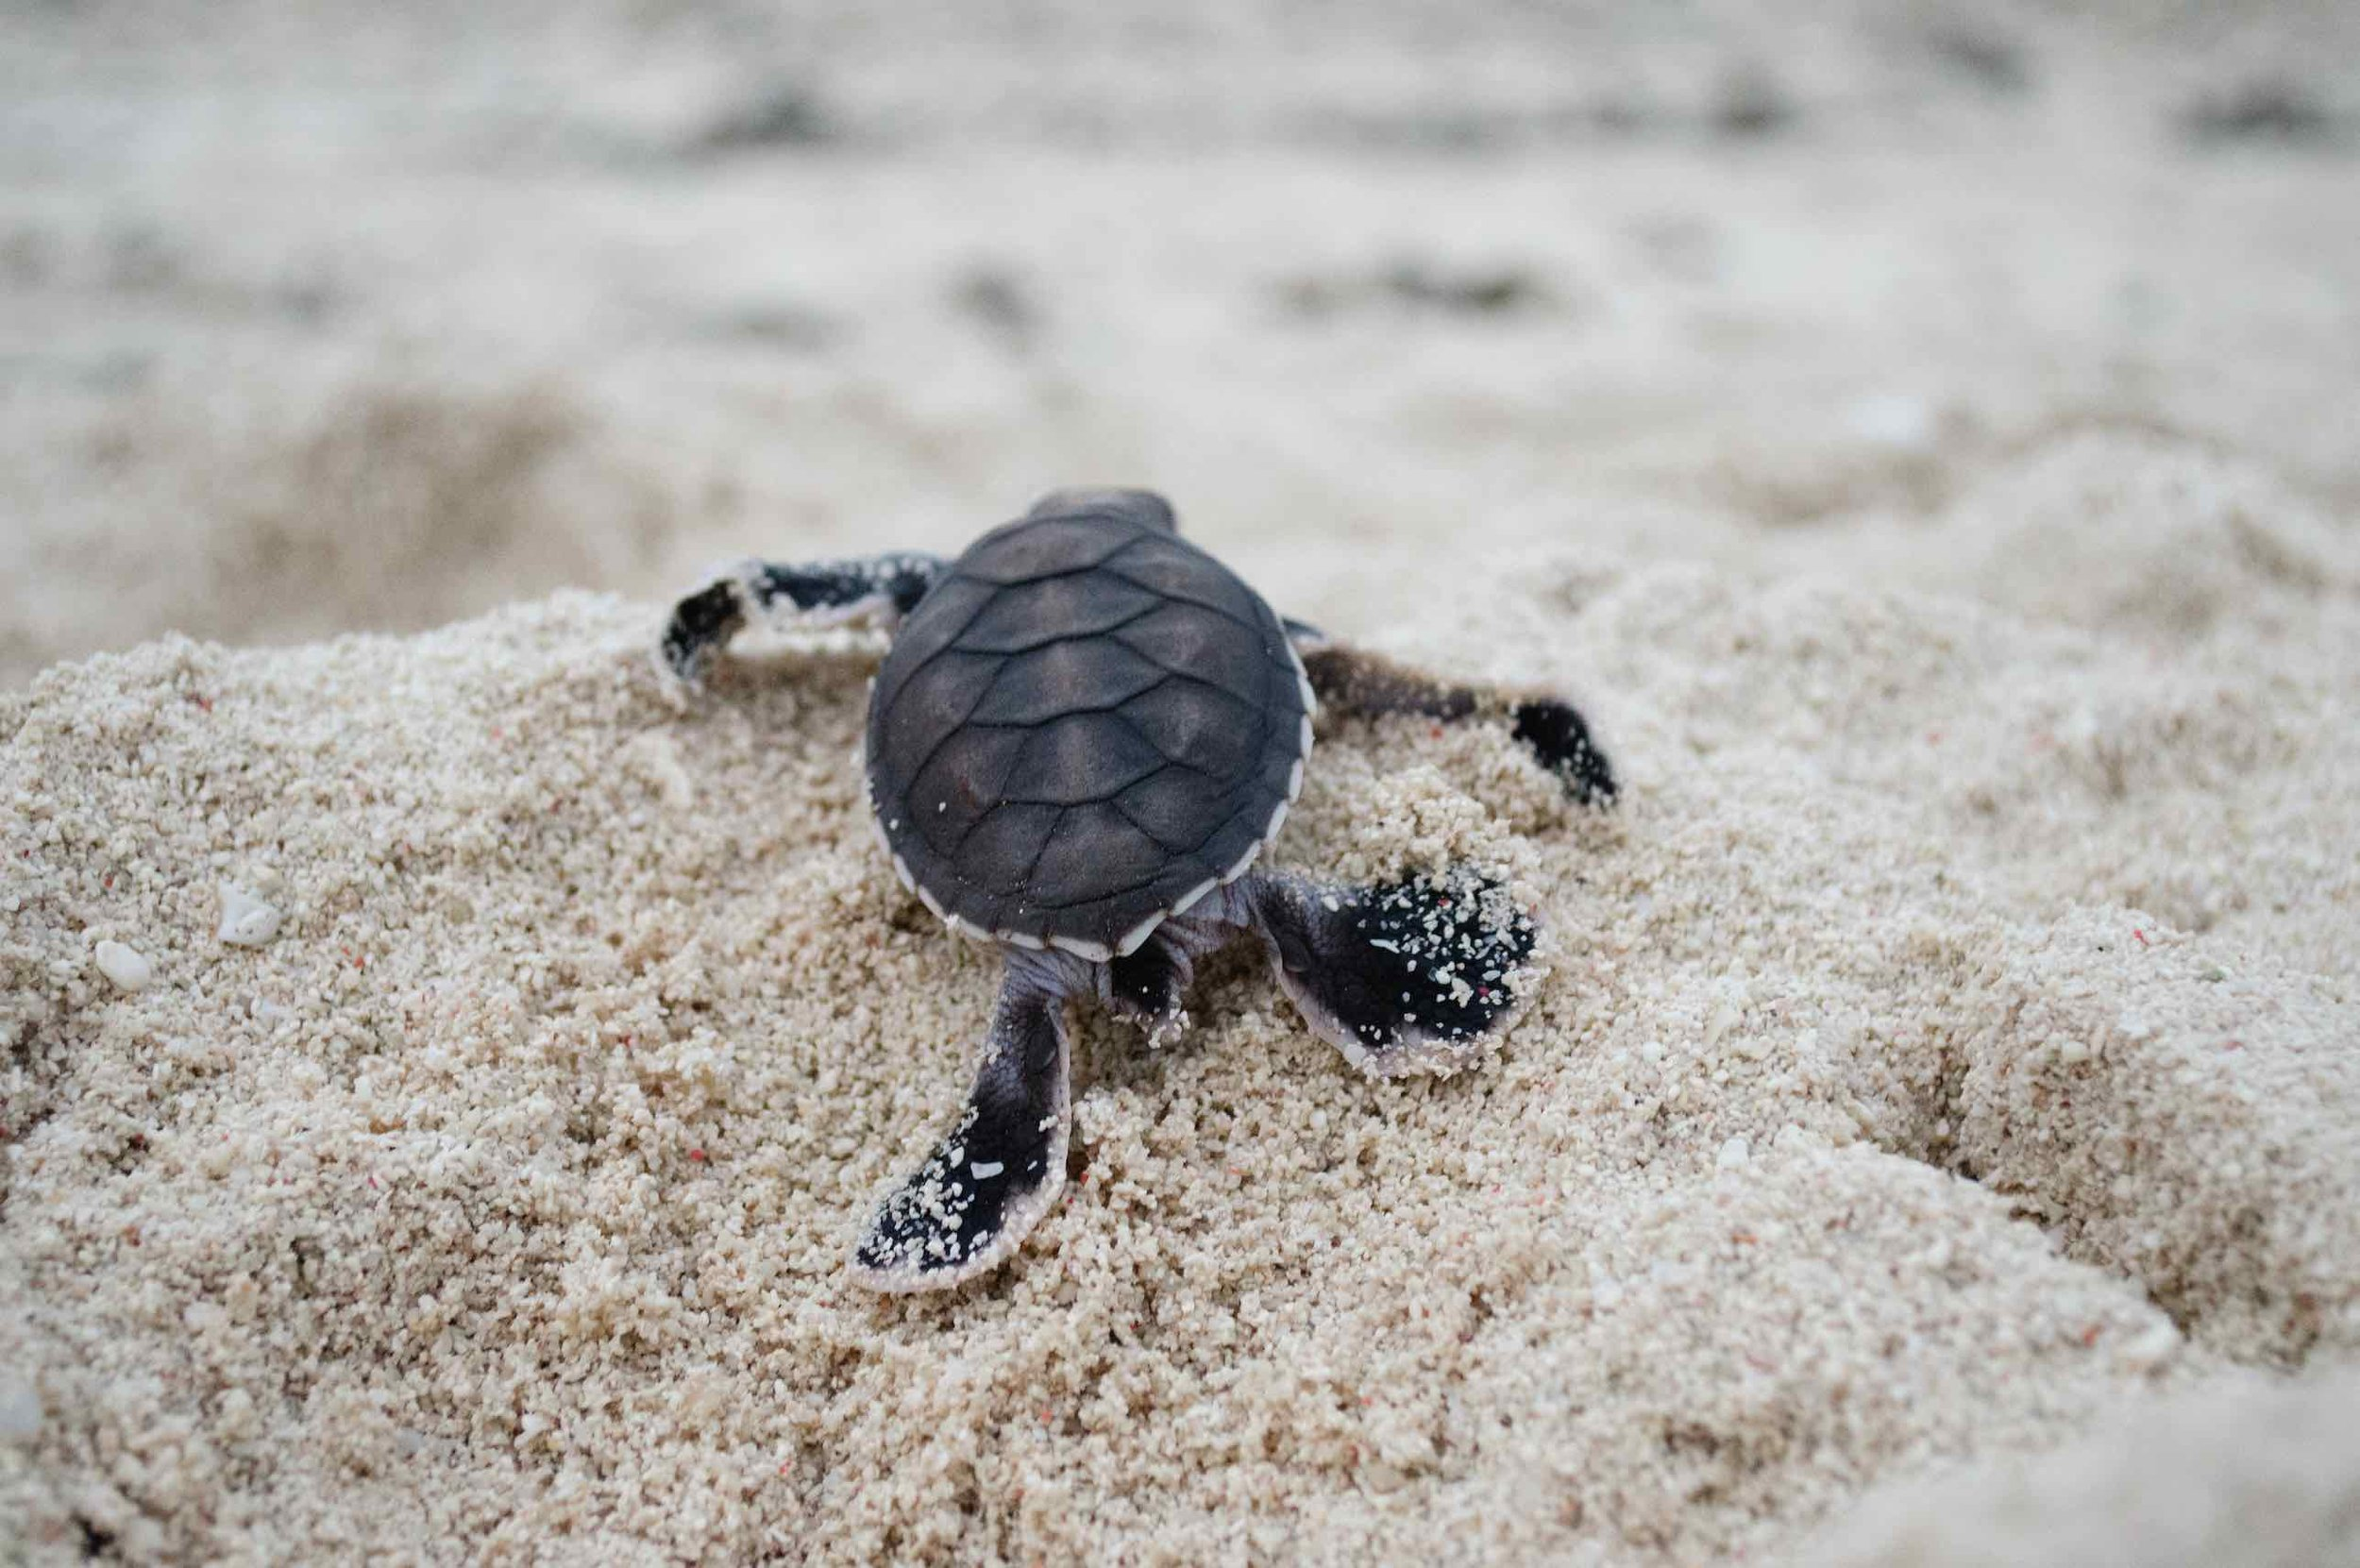 TURTLE HATCHLING, NEW CALEDONIA © CREDIT: THE OCEAN AGENCY / CORAL REEF IMAGE BANK